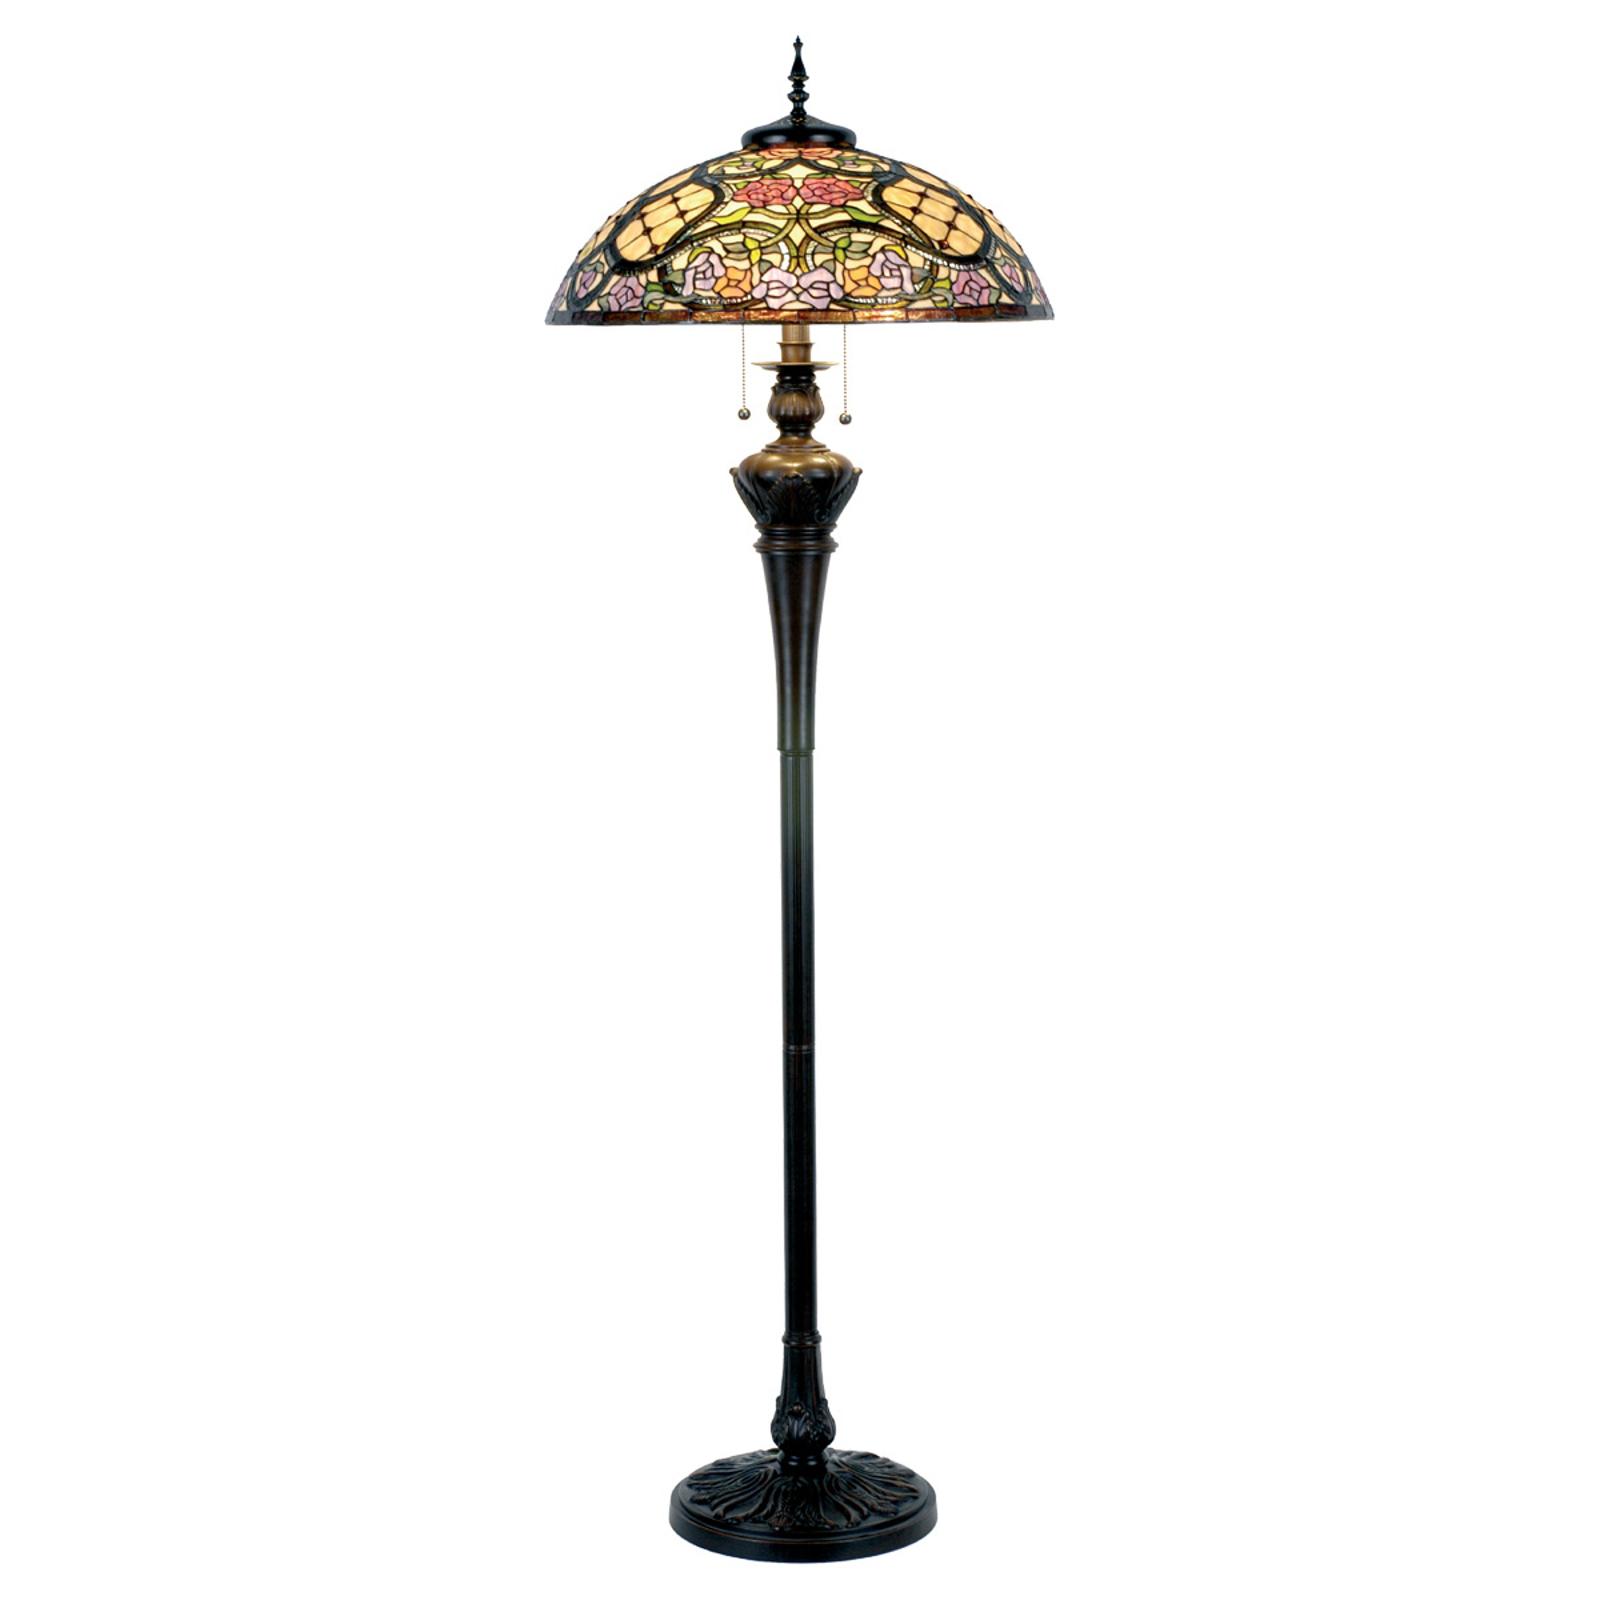 Rosaly - vloerlamp in Tiffany-design